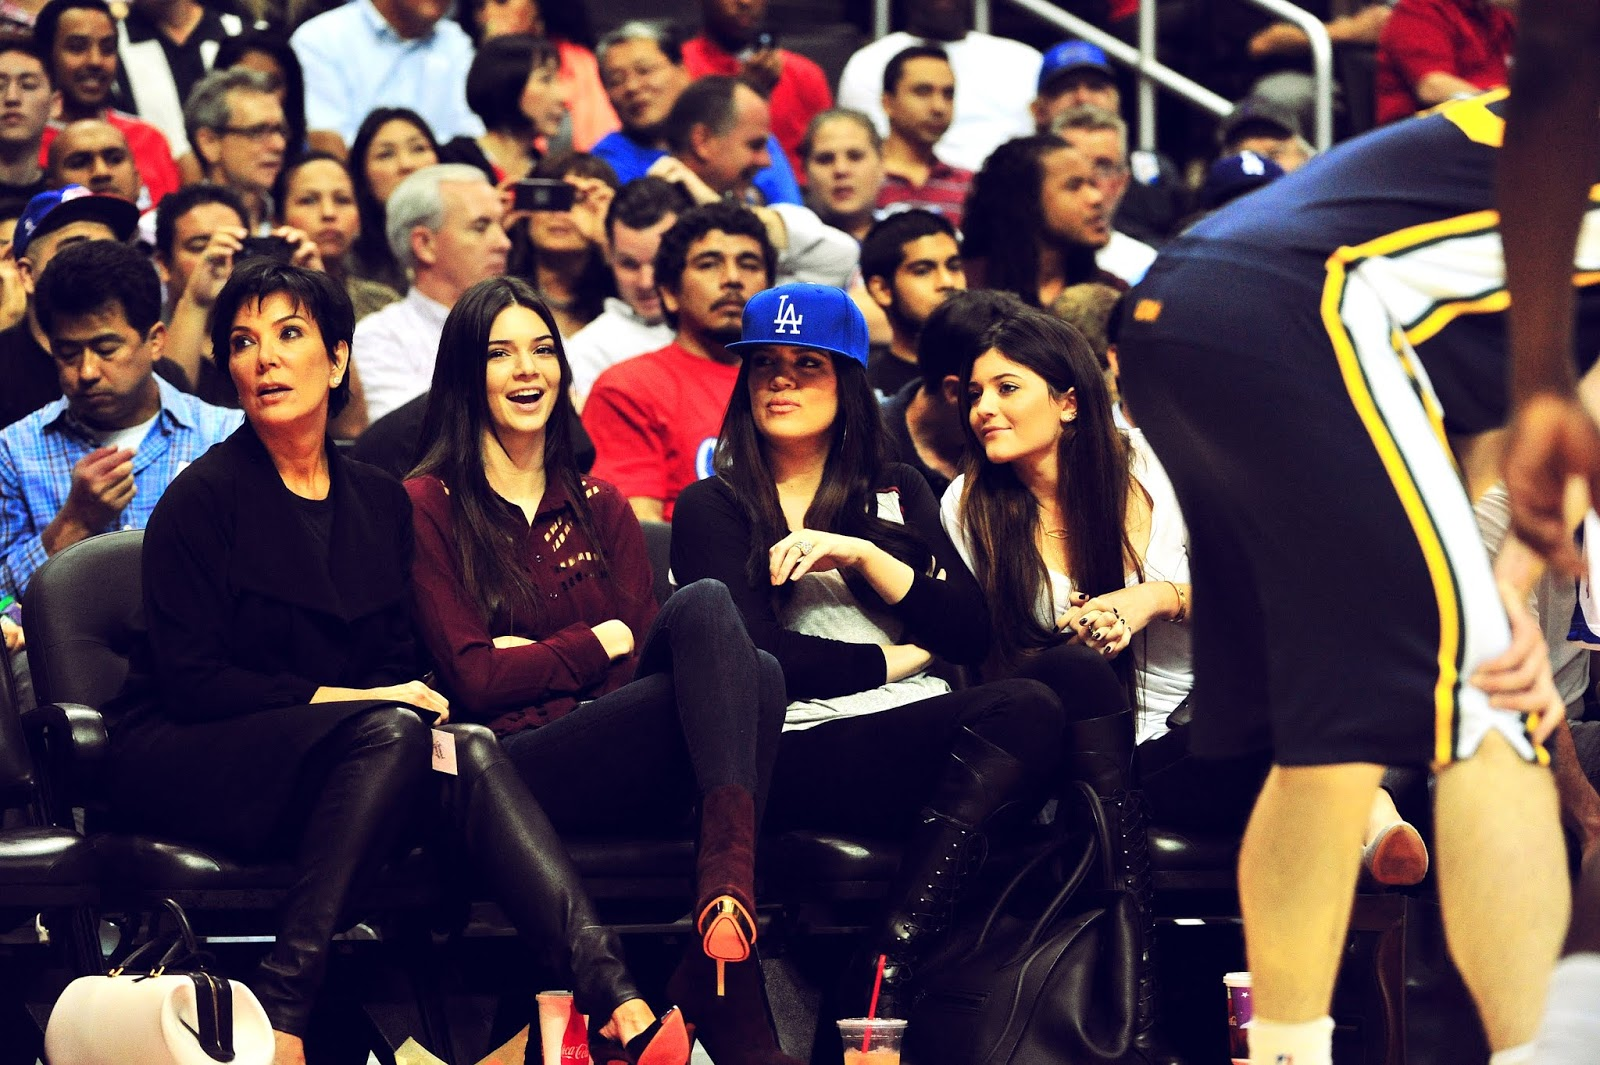 03 - Watching The Los Angeles Clippers Game on October 17, 2012